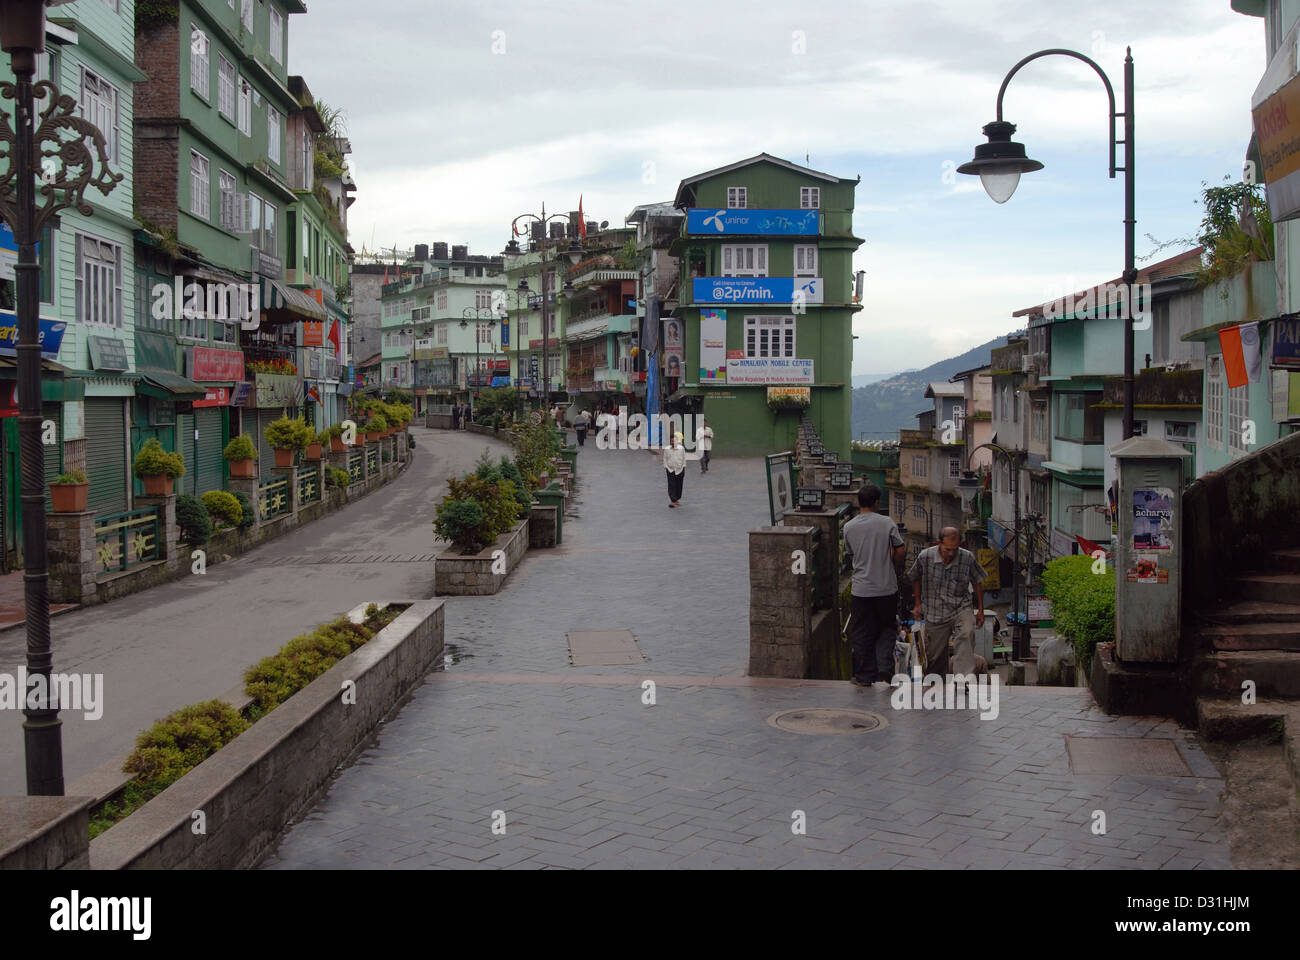 General-View of the Mall road, showing houses and shops which is the  main shopping area in Gangtok (Sikkim) - Stock Image